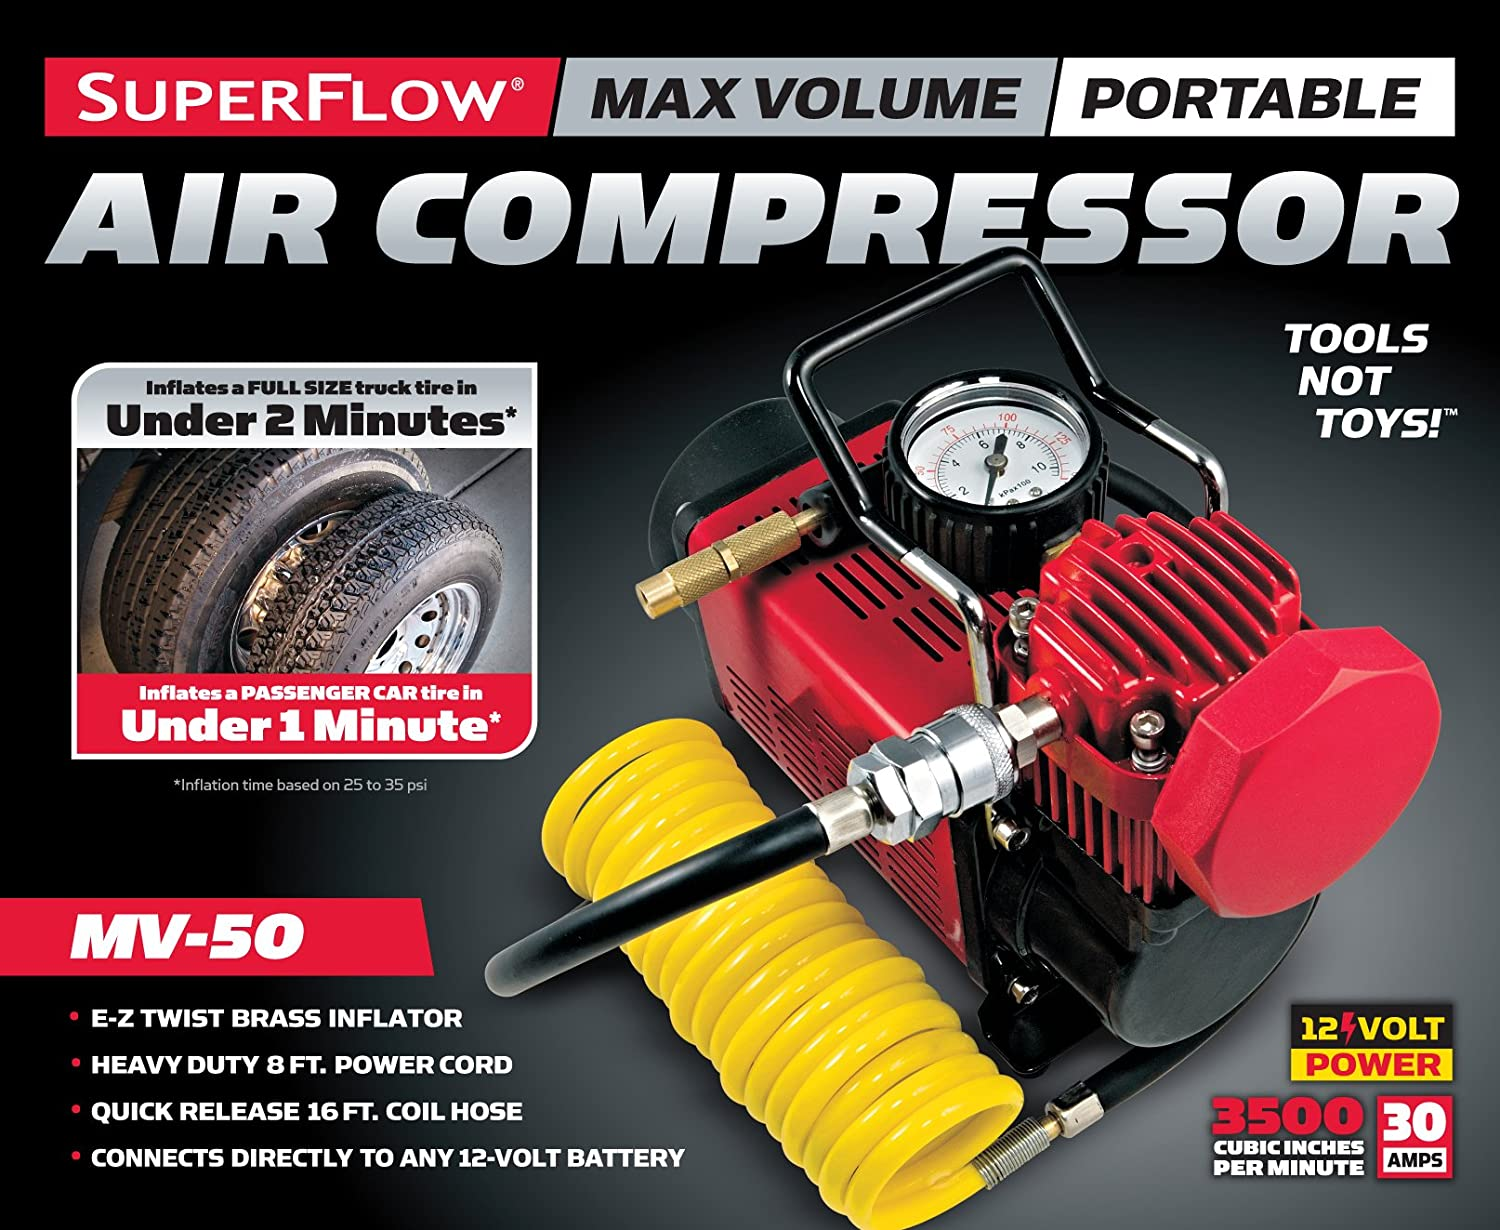 You will appreciate the included 16-foot hose of 12v air compressor that can reach all the corners of your car.